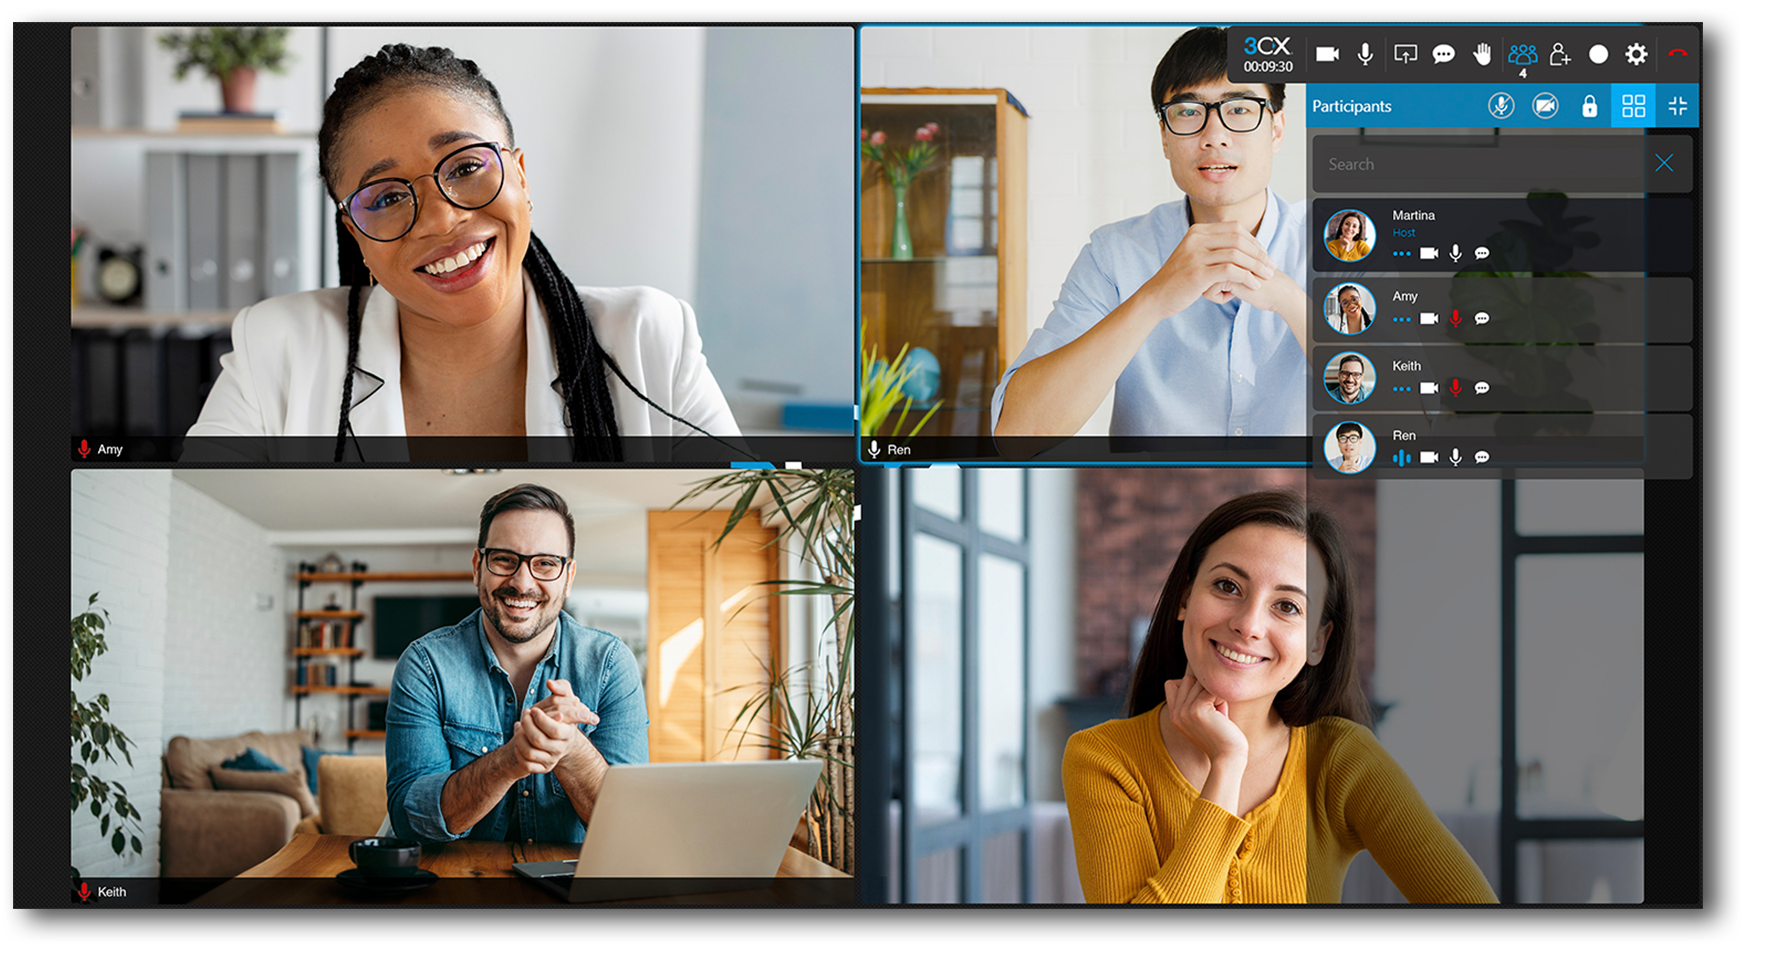 3CX Software - video conference